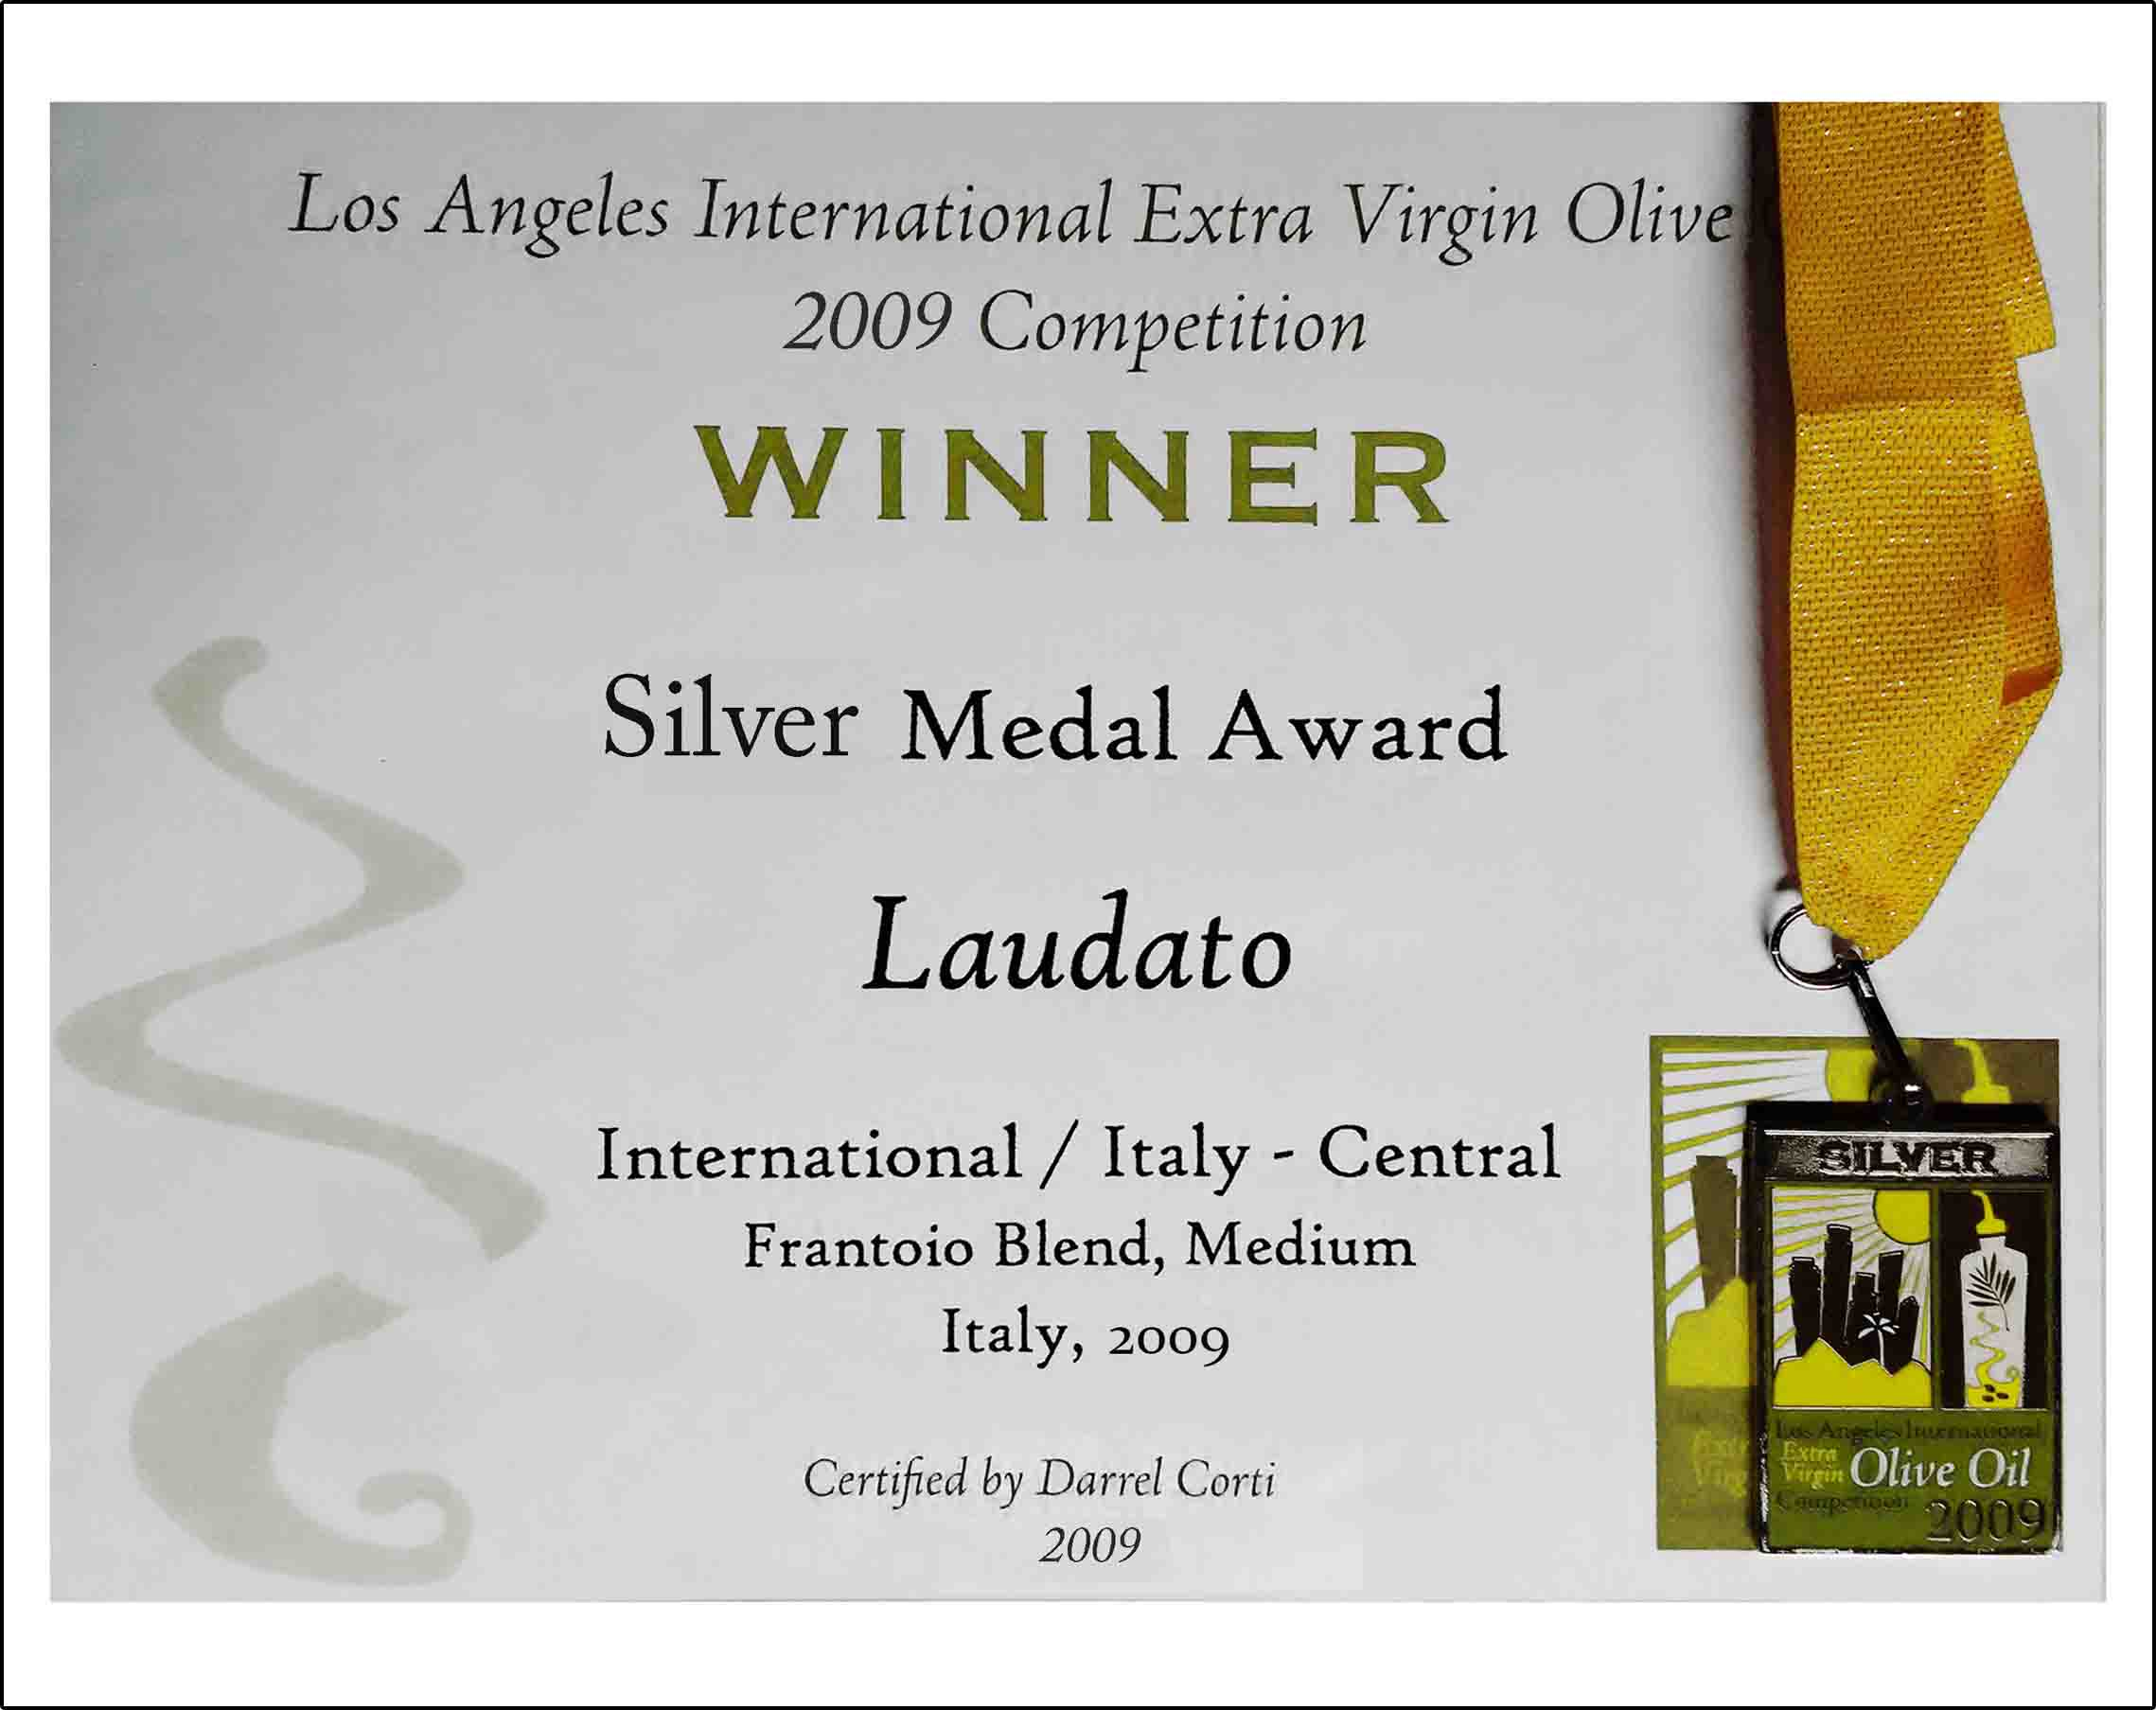 Los Angeles International Extra Virgin Olive Oil Competition 2009